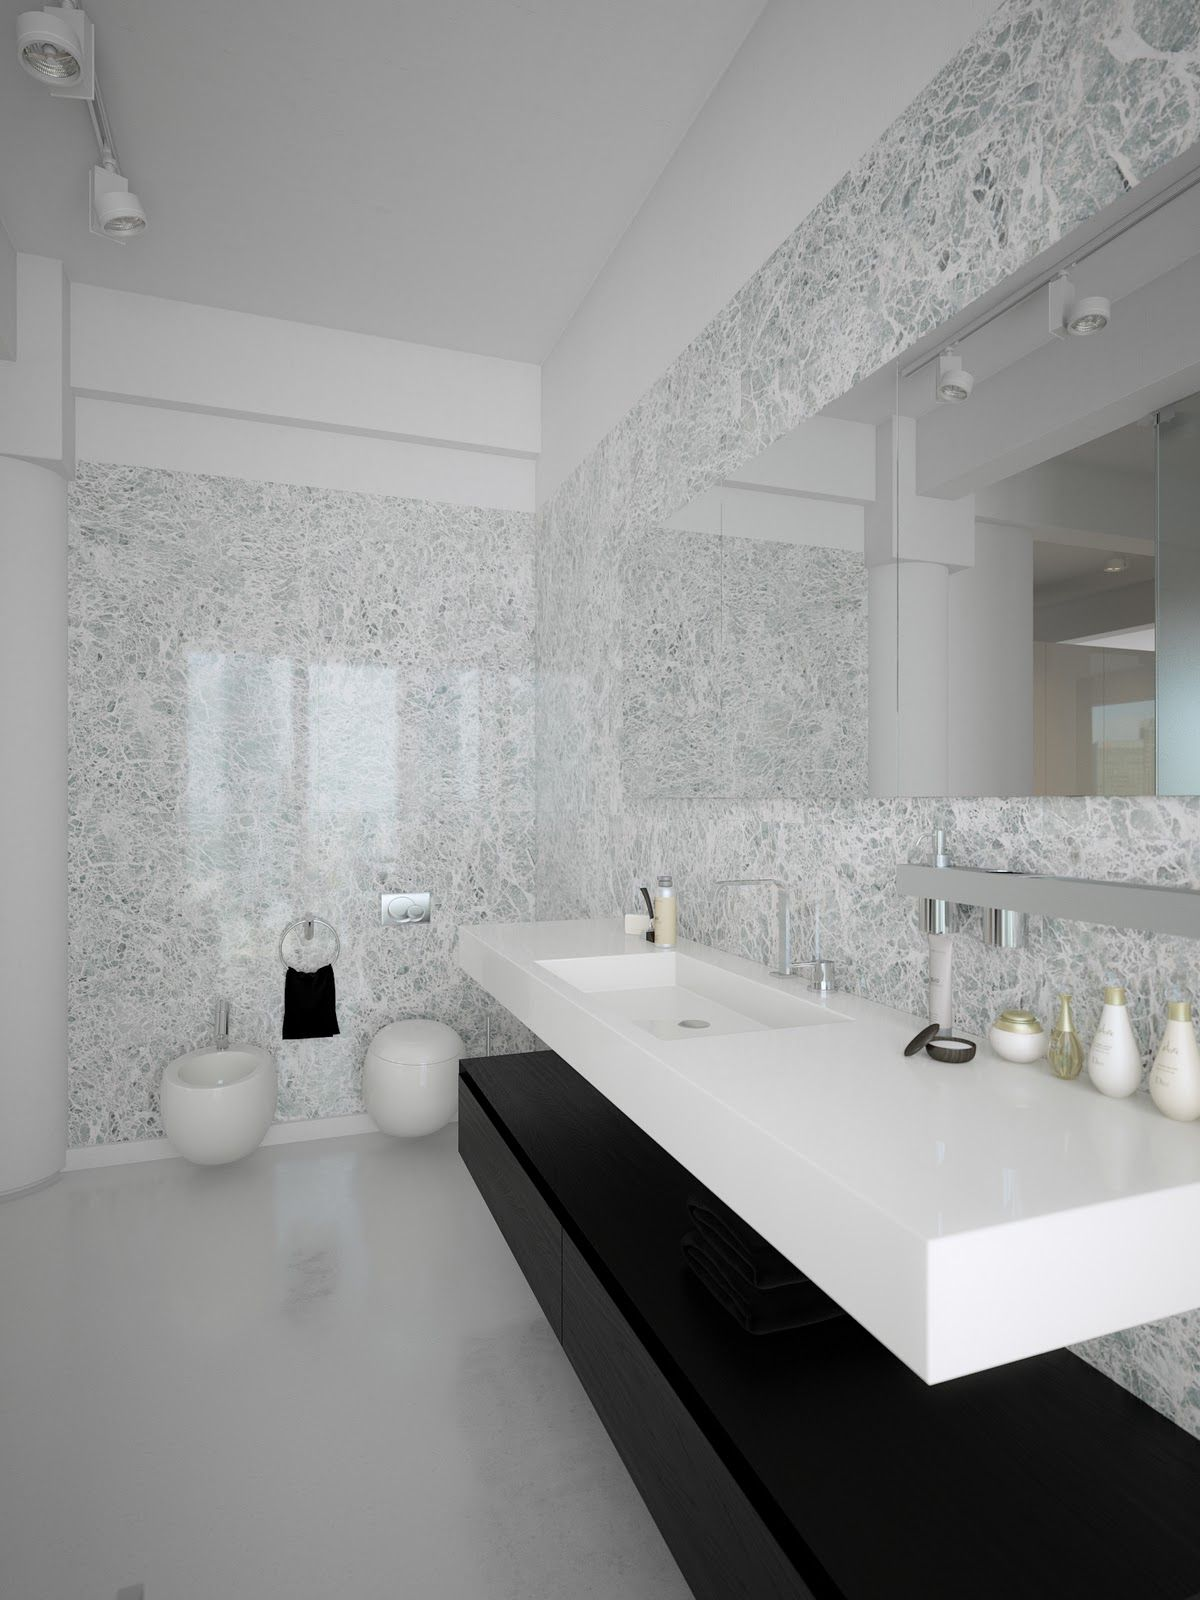 Coolest minimalist modern bathroom design contemporary for Contemporary bathroom accessories